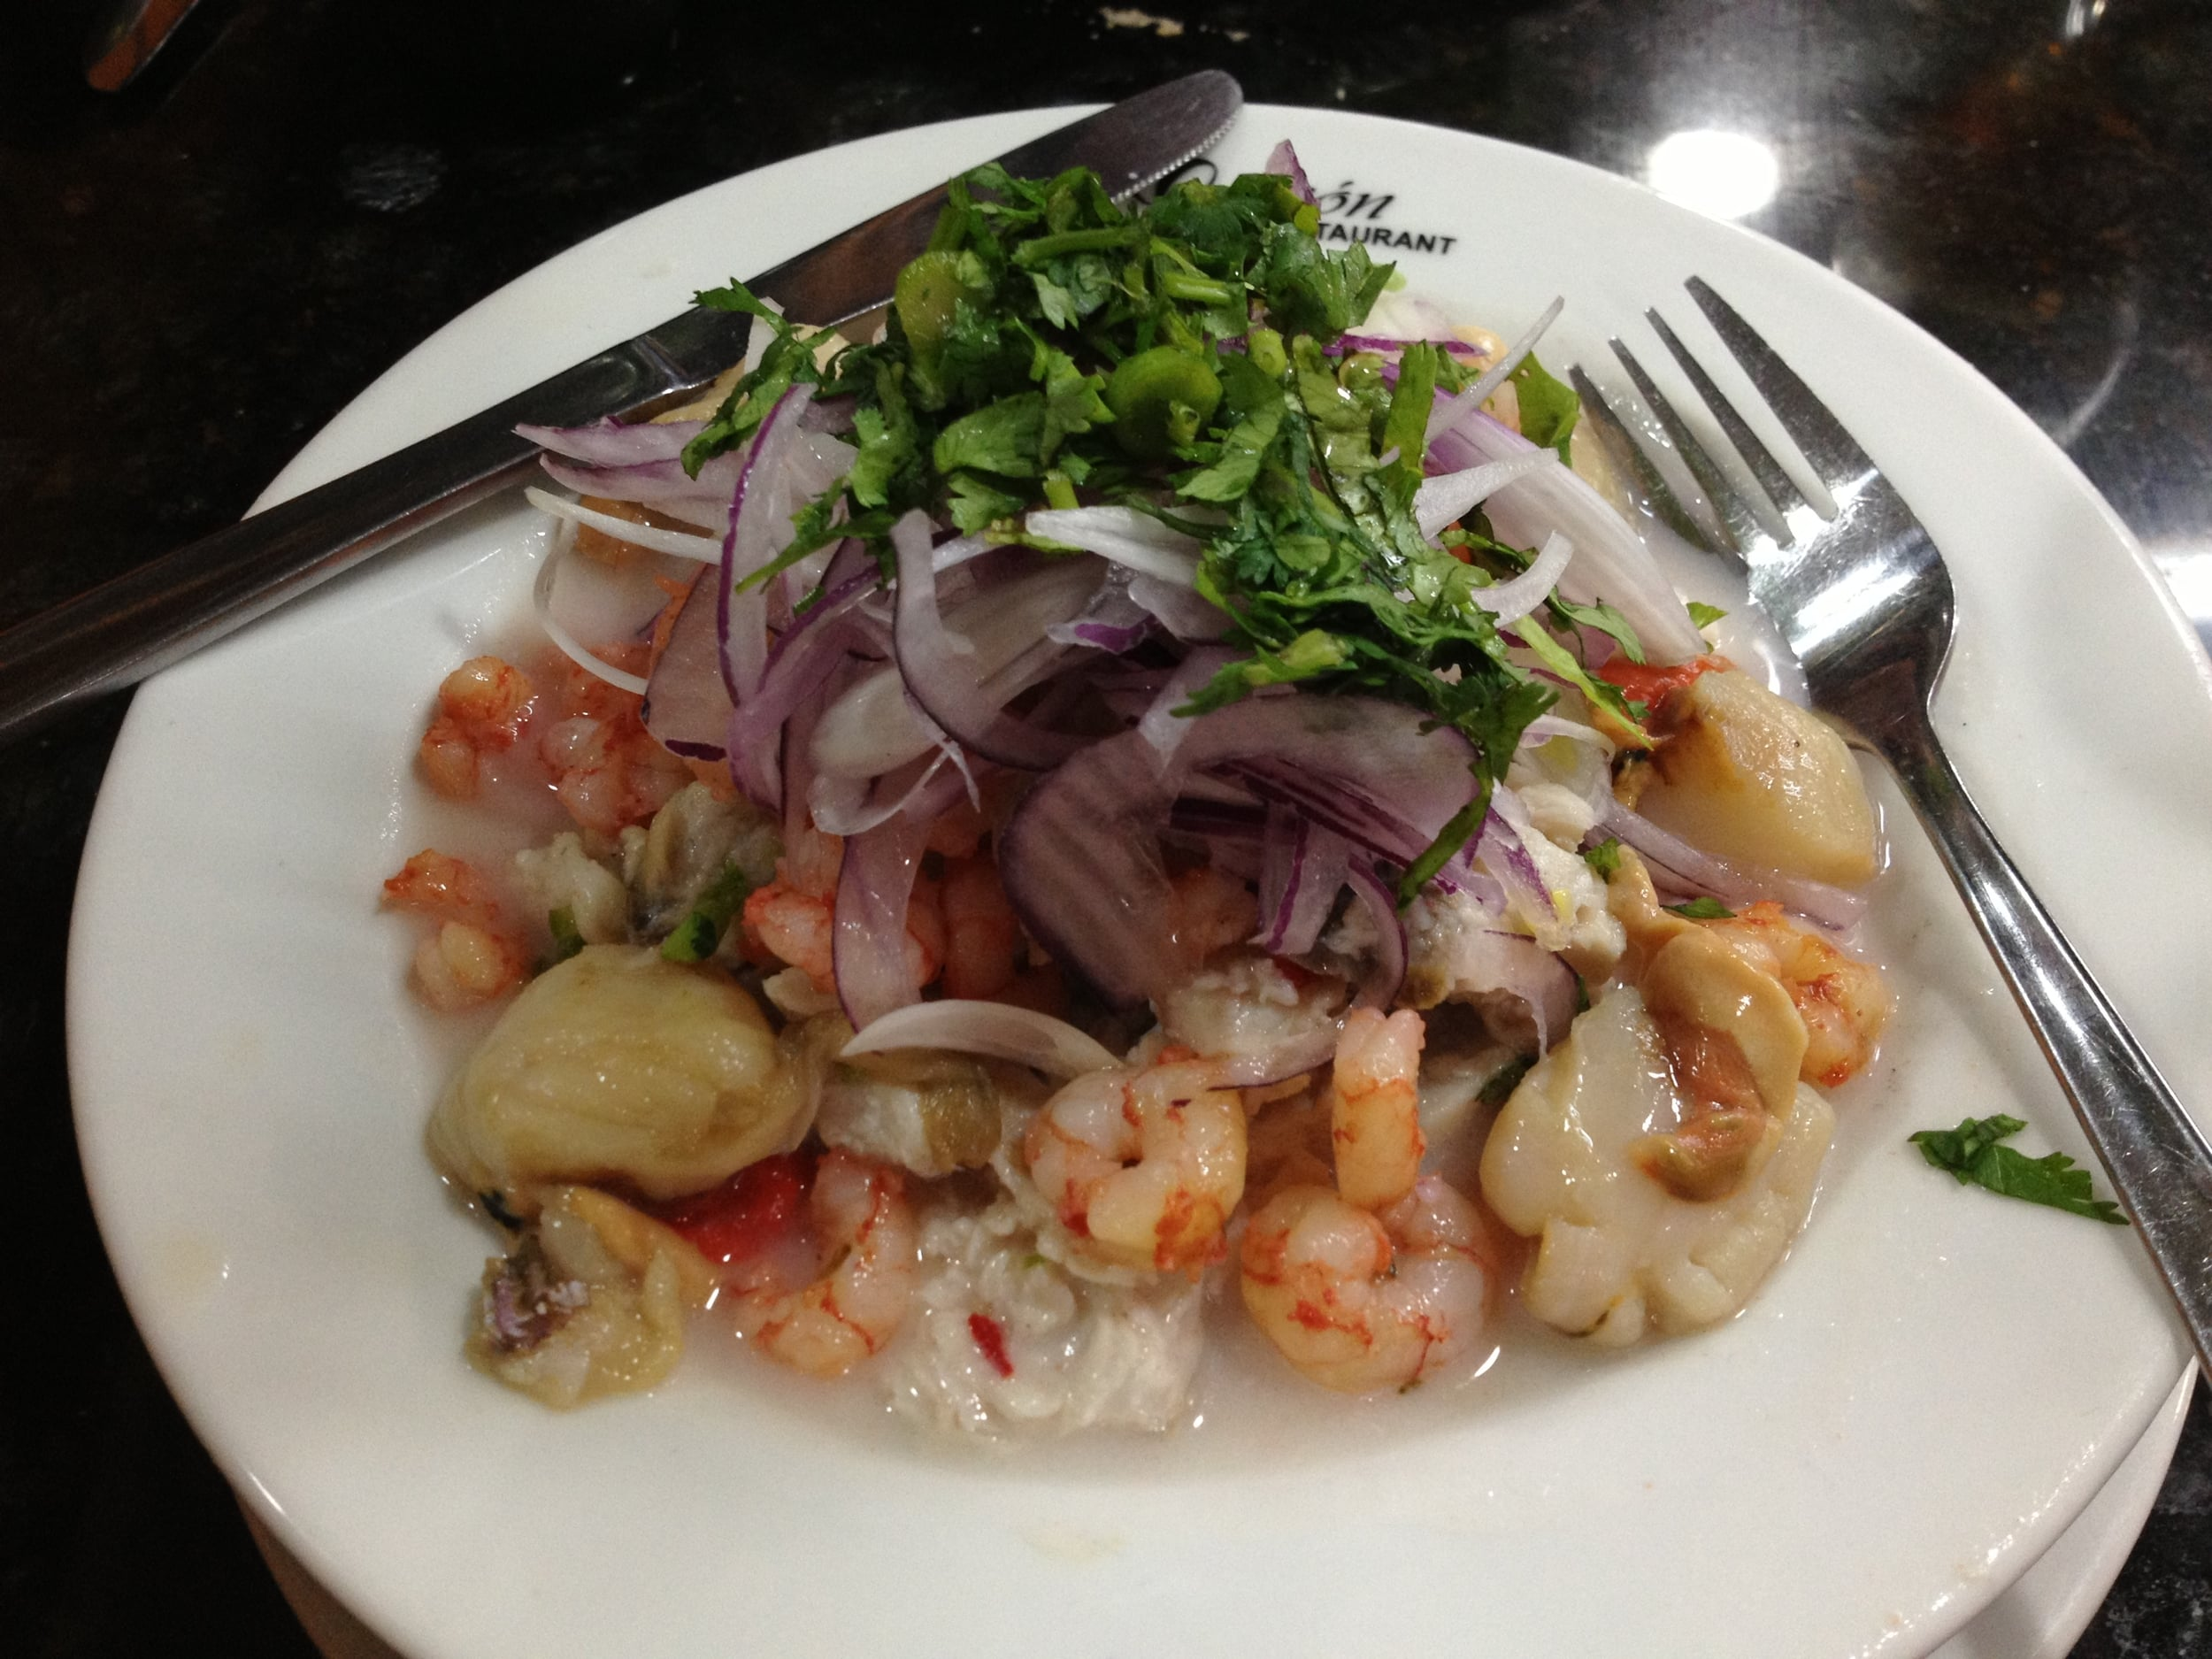 Ceviche - Raw Seafood Cured in Lemon & Lime juice